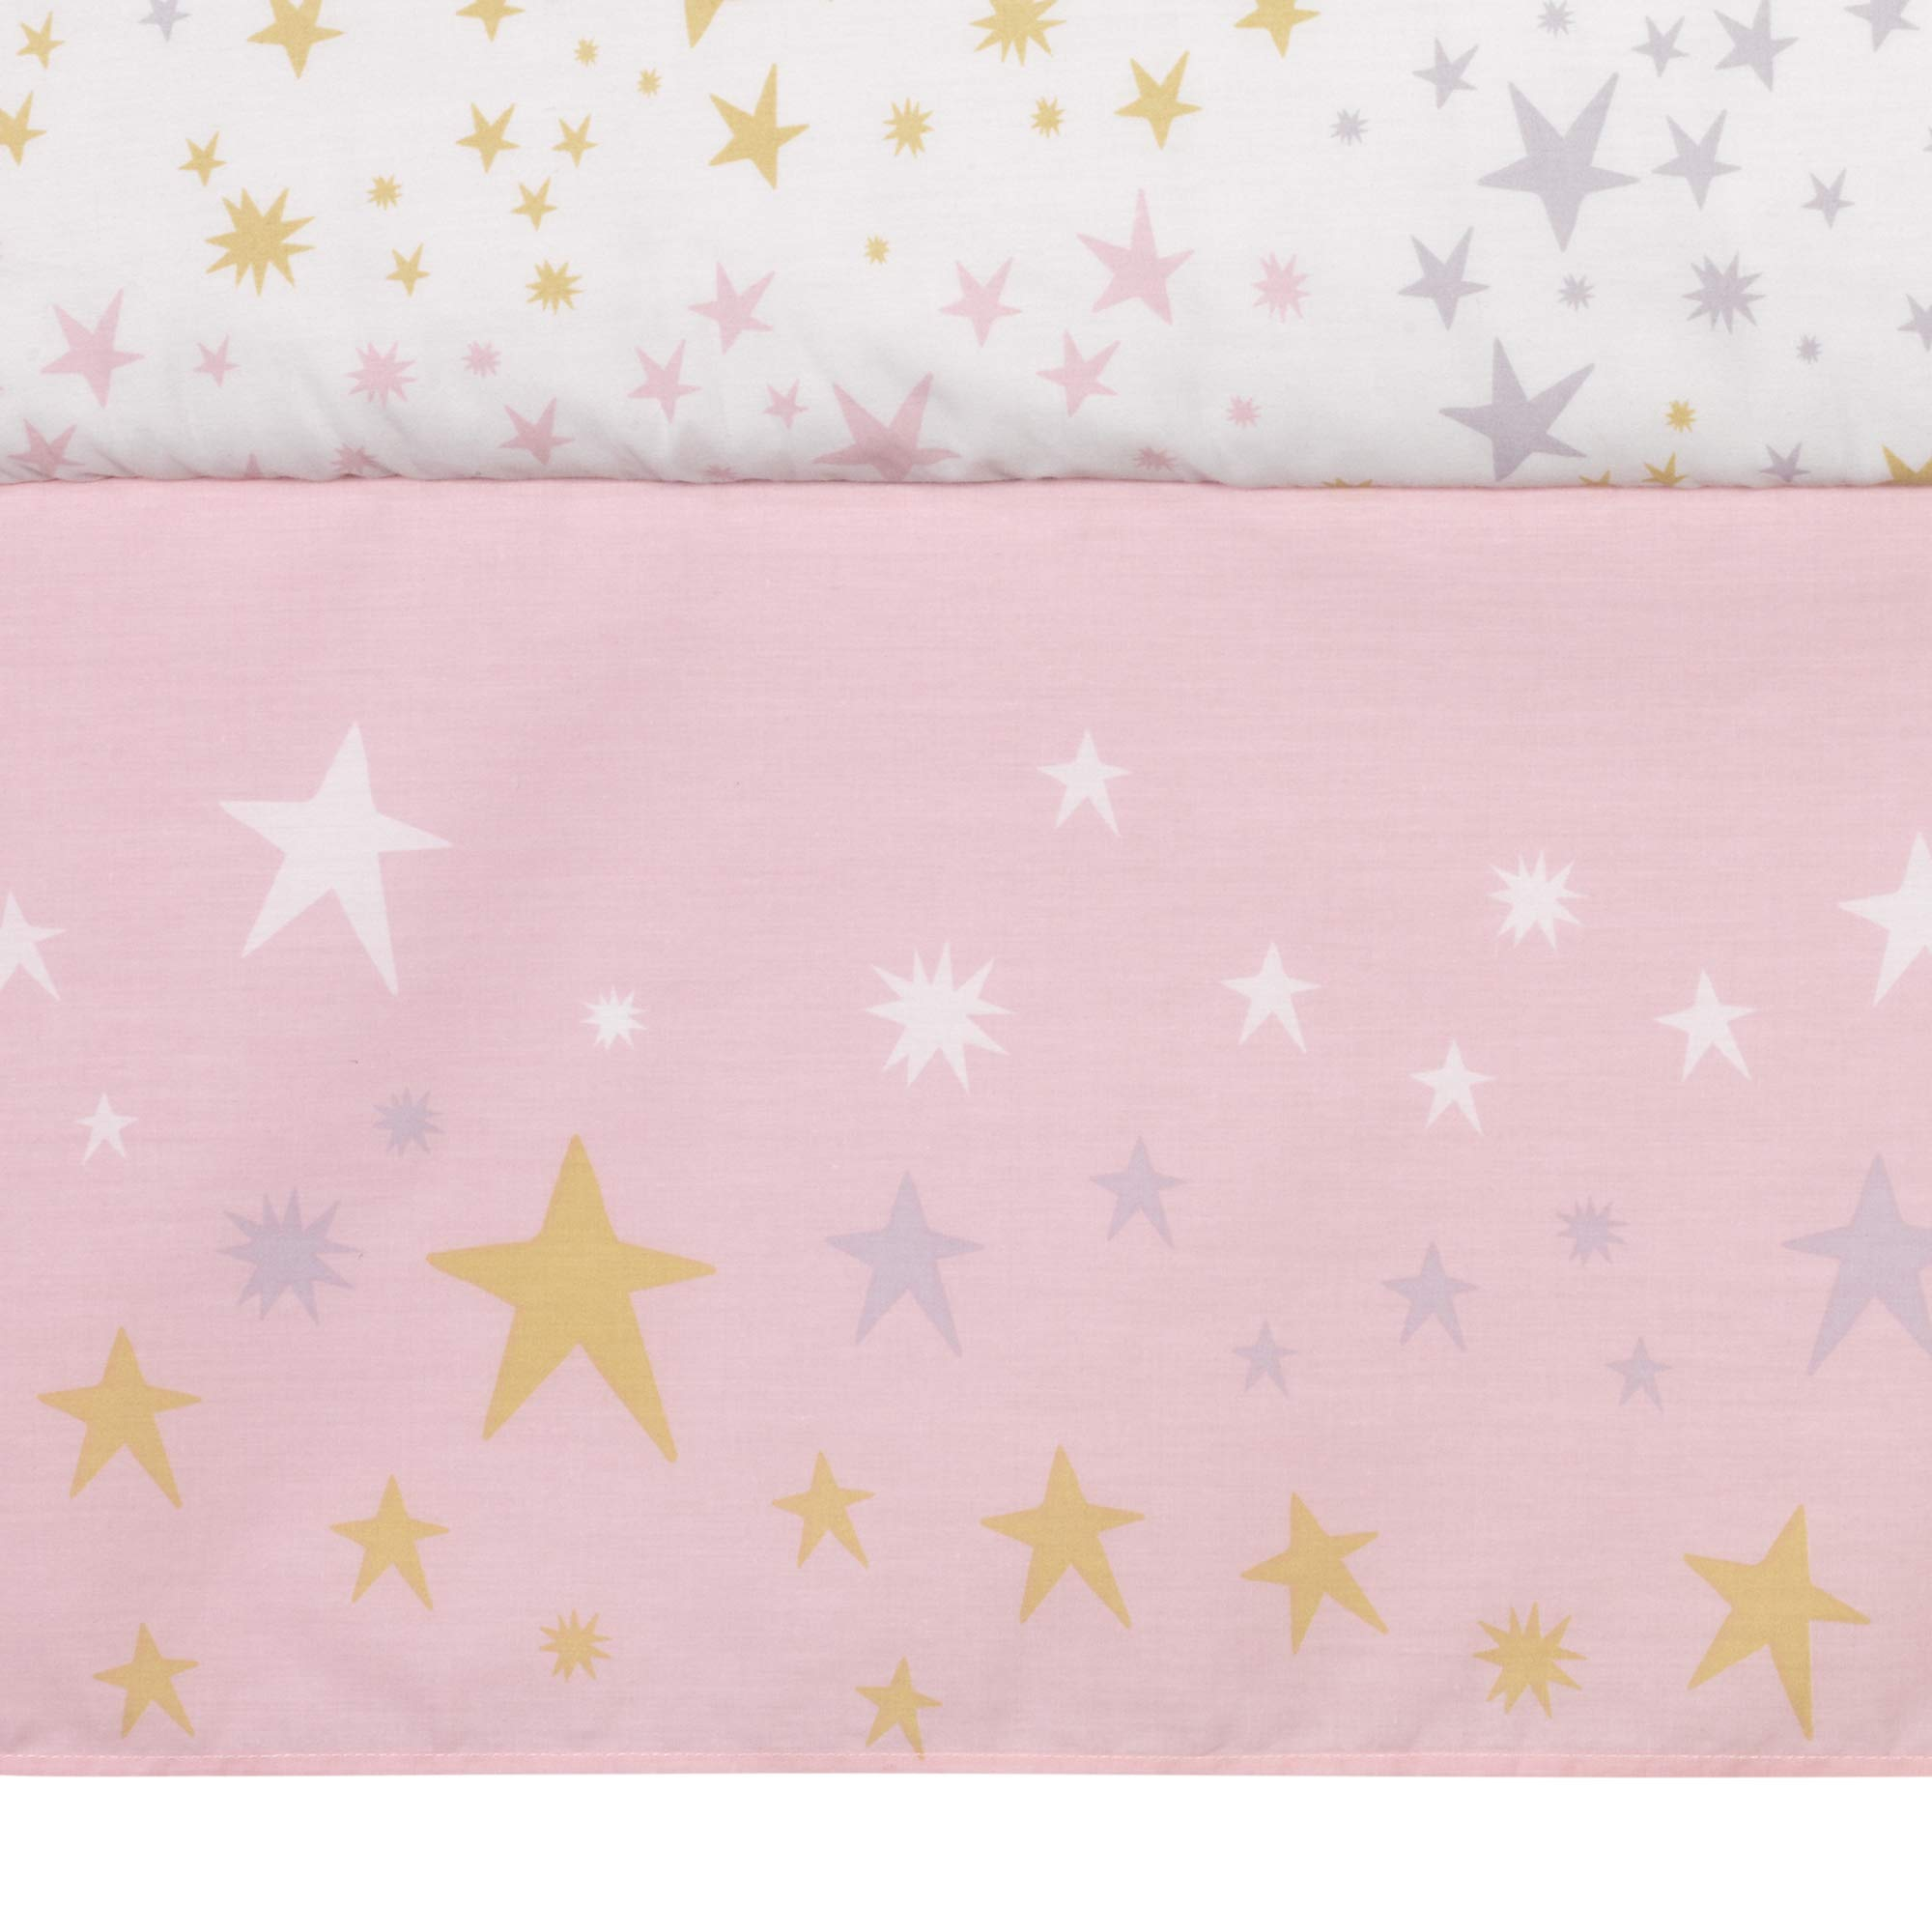 Bedtime Originals Rainbow Unicorn 3-Piece Crib Bedding Set, Purple by Bedtime Originals (Image #5)